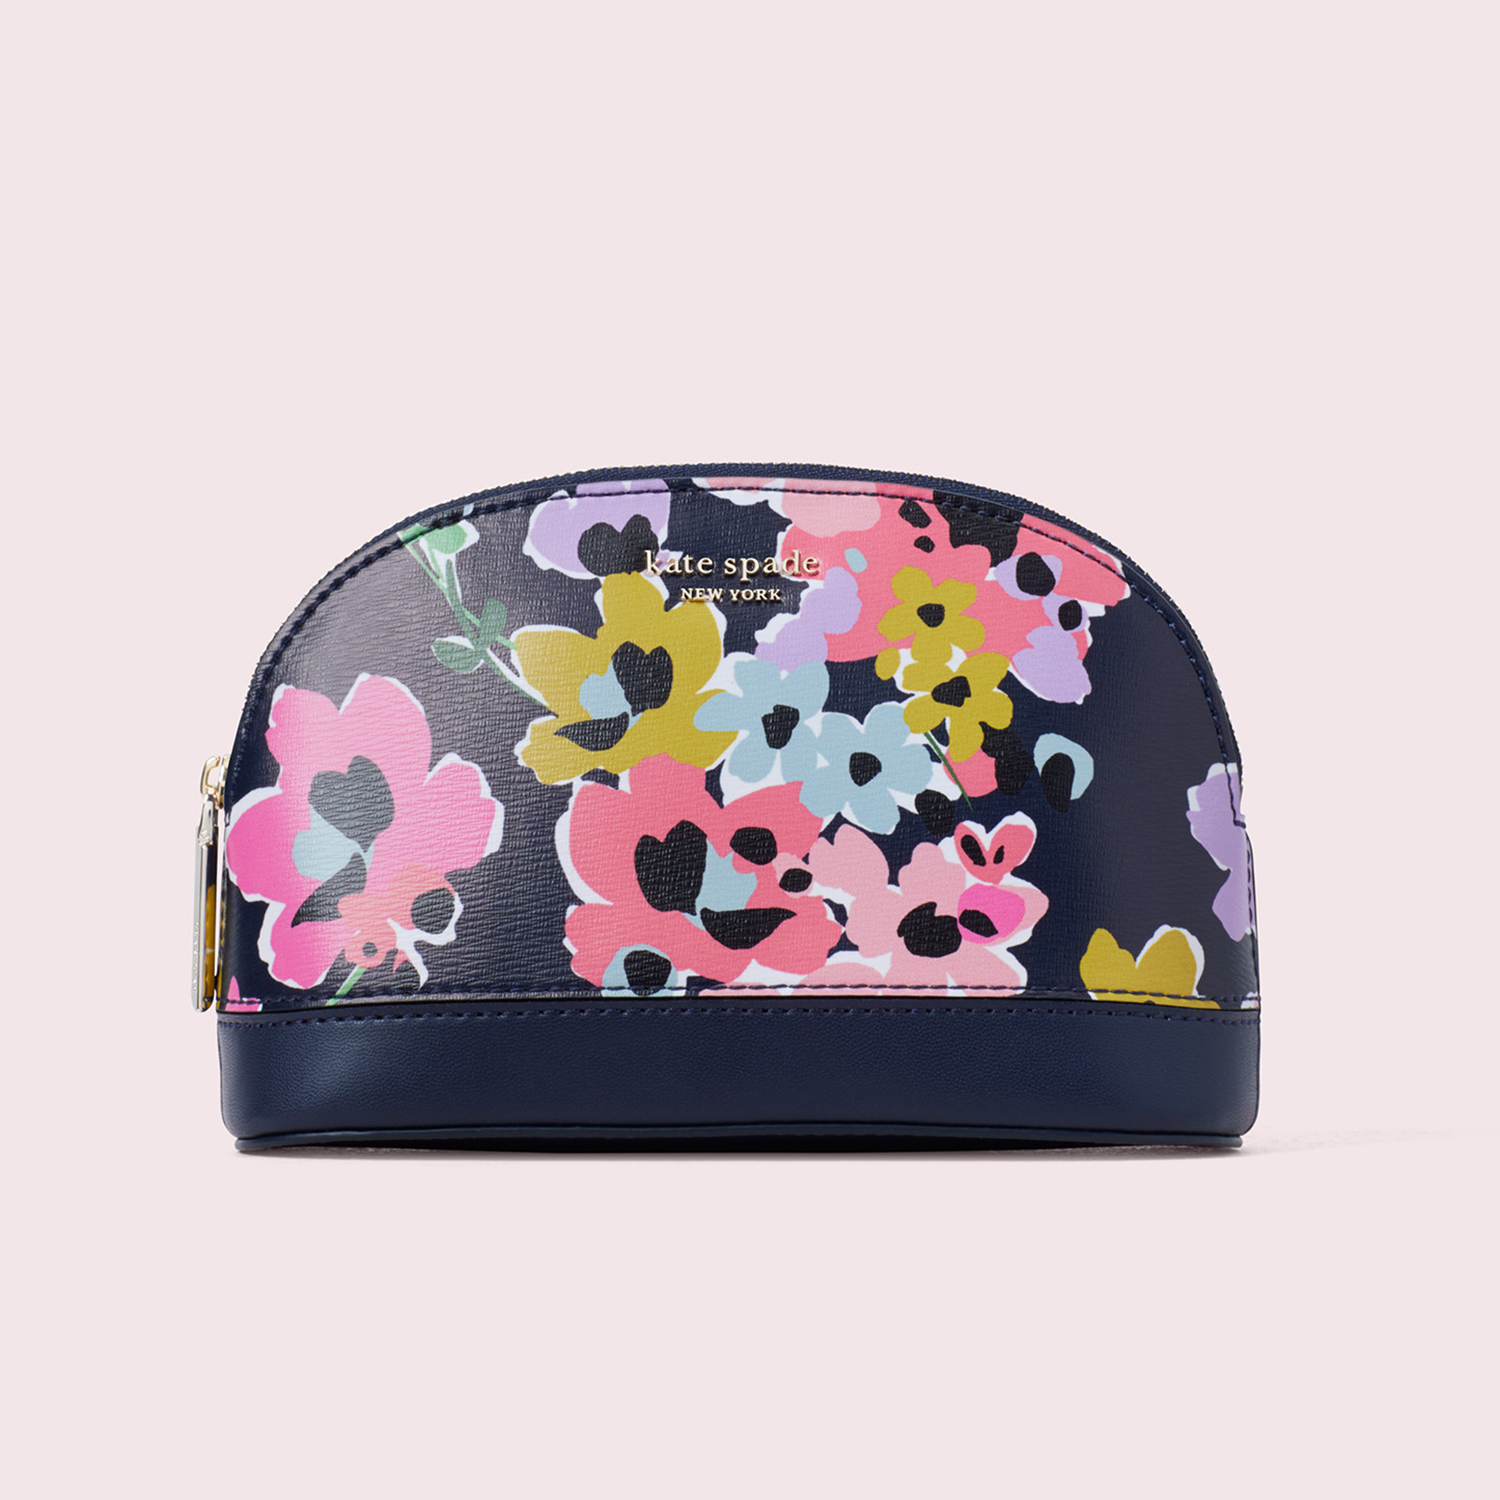 Sylvia Wildflower Bouquet Medium Dome Cosmetic Bag Kate Spade